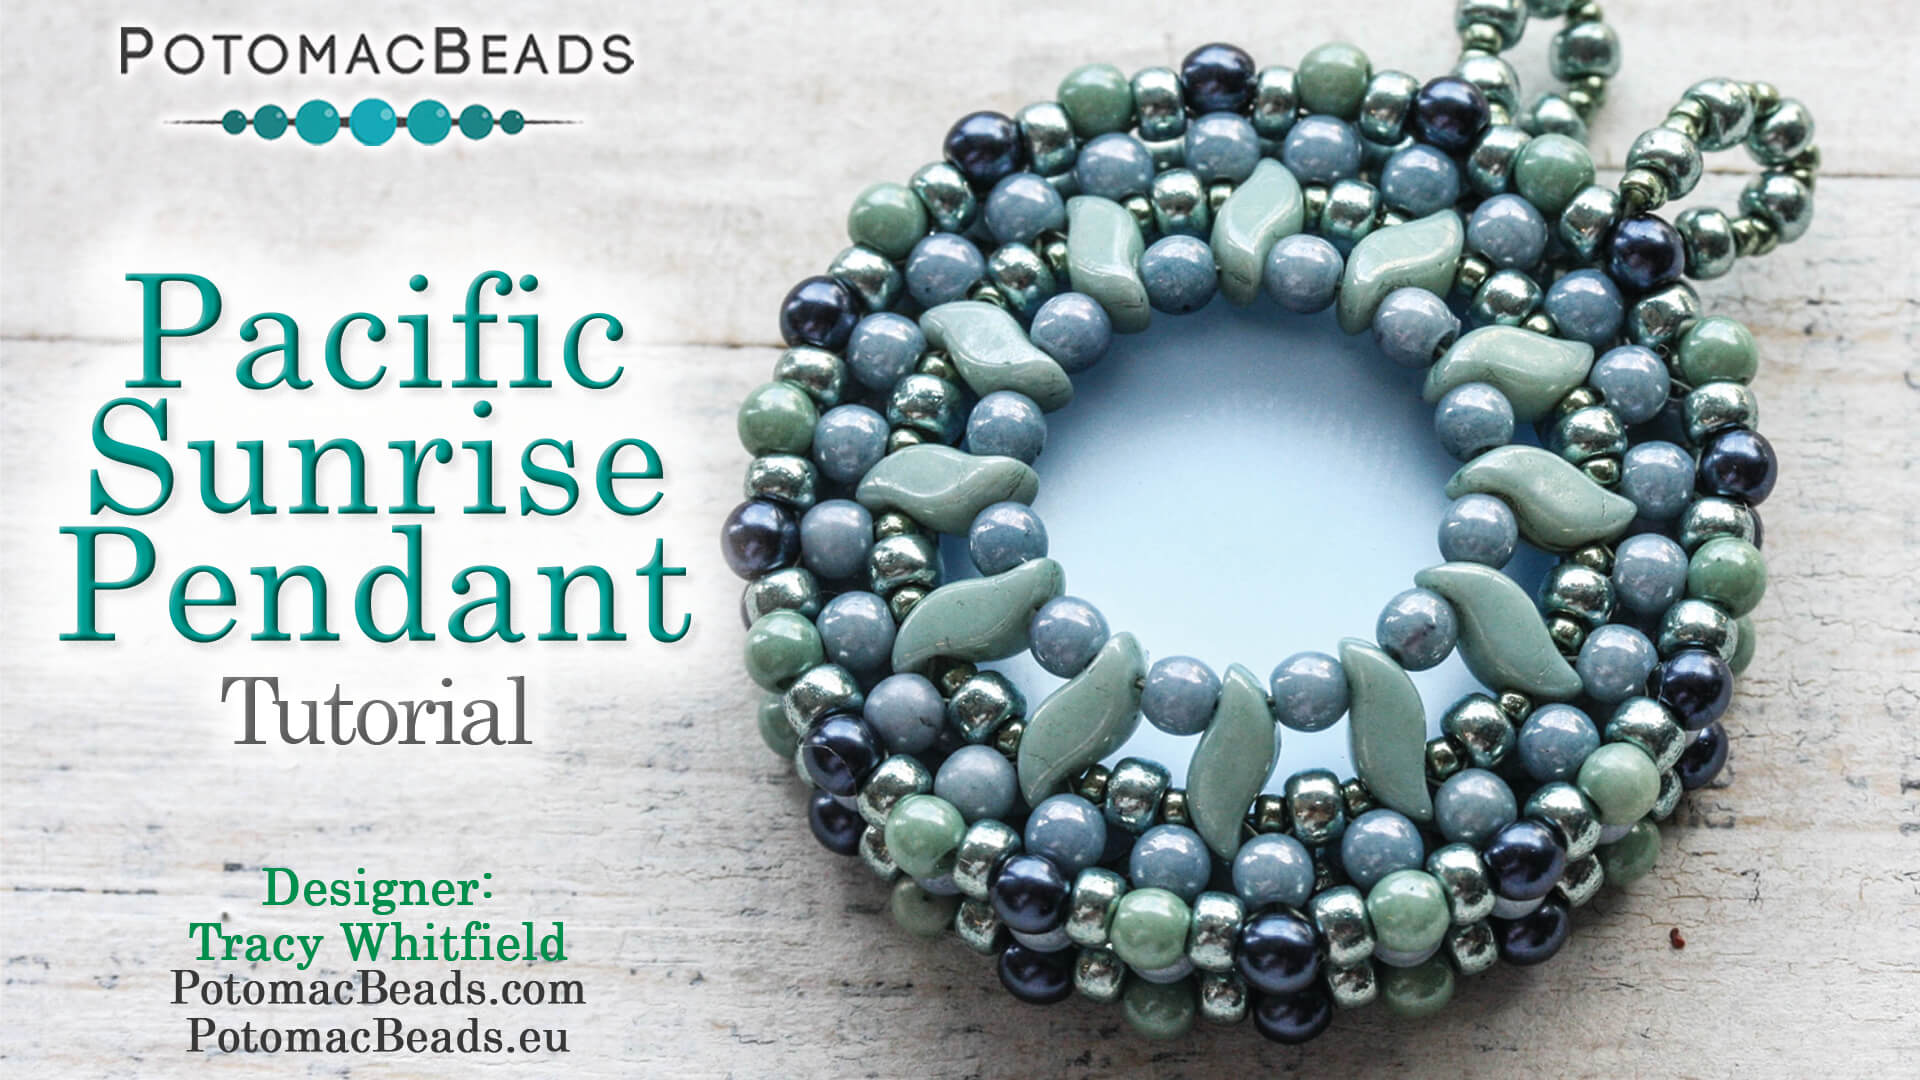 How to Bead Jewelry / Videos Sorted by Beads / Pearl Videos (Czech, Freshwater, Potomac Pearls) / Pacific Sunrise Pendant Tutorial